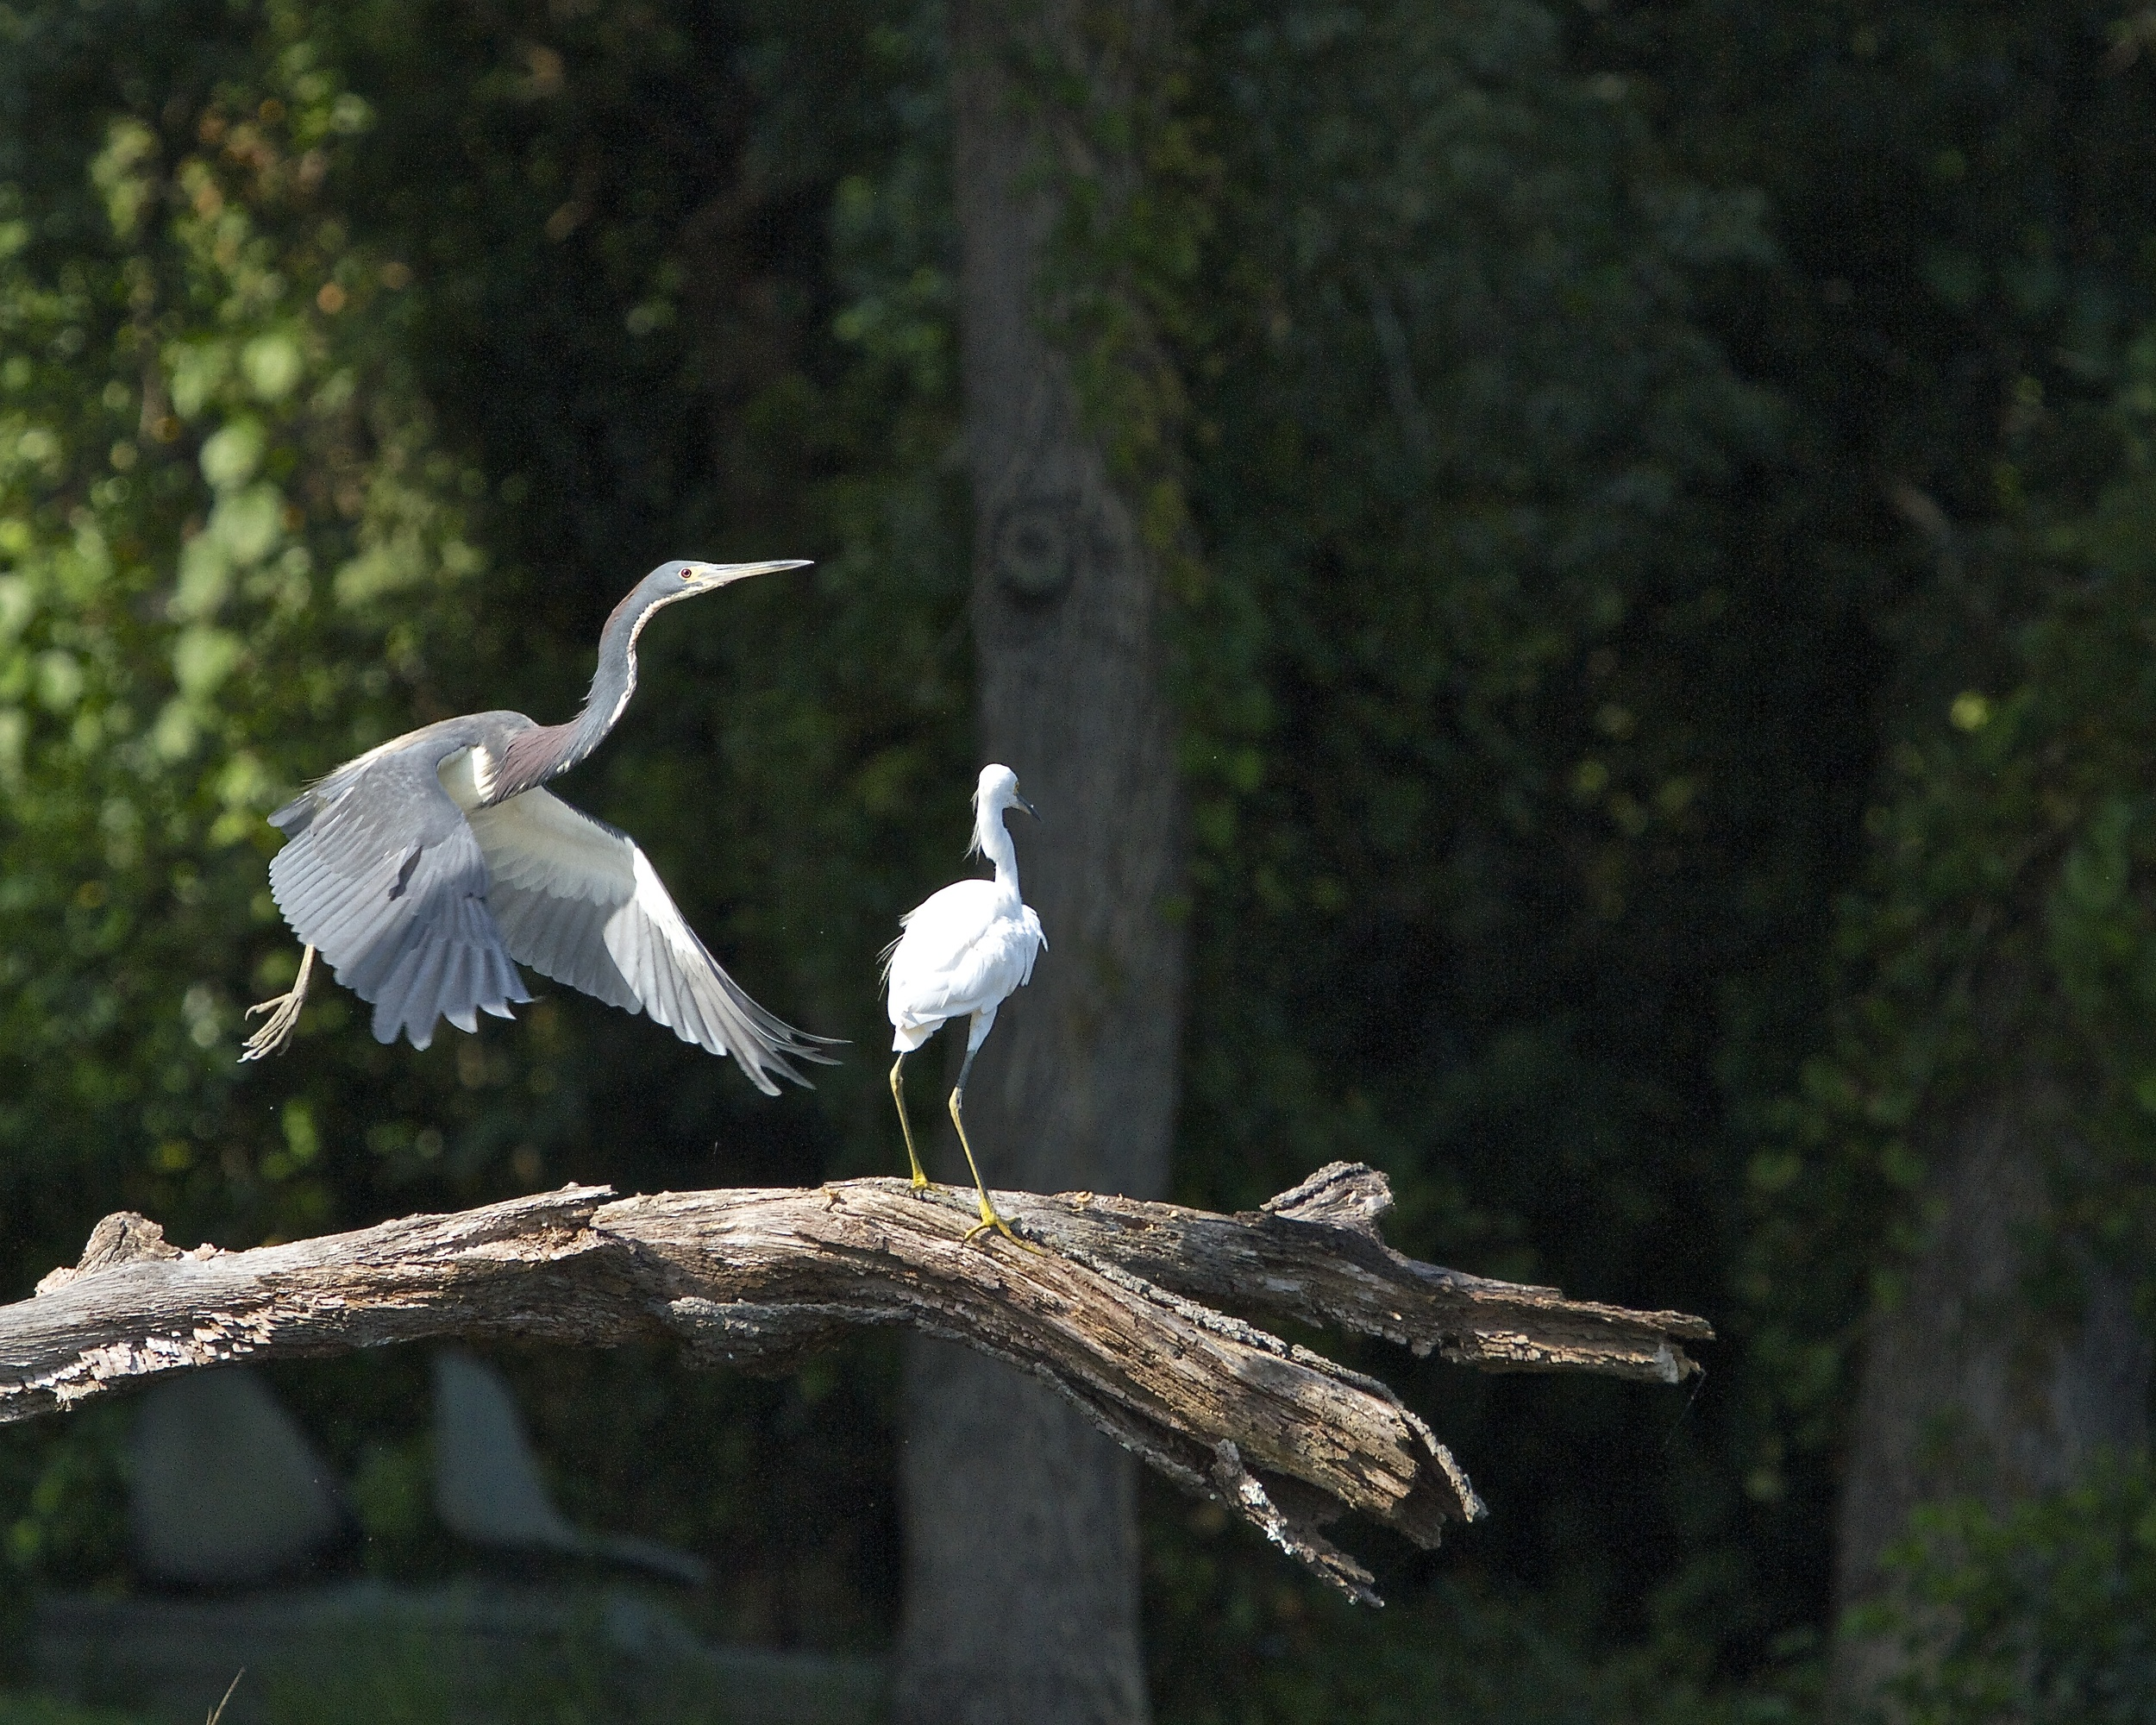 The Herons take flight again   ...